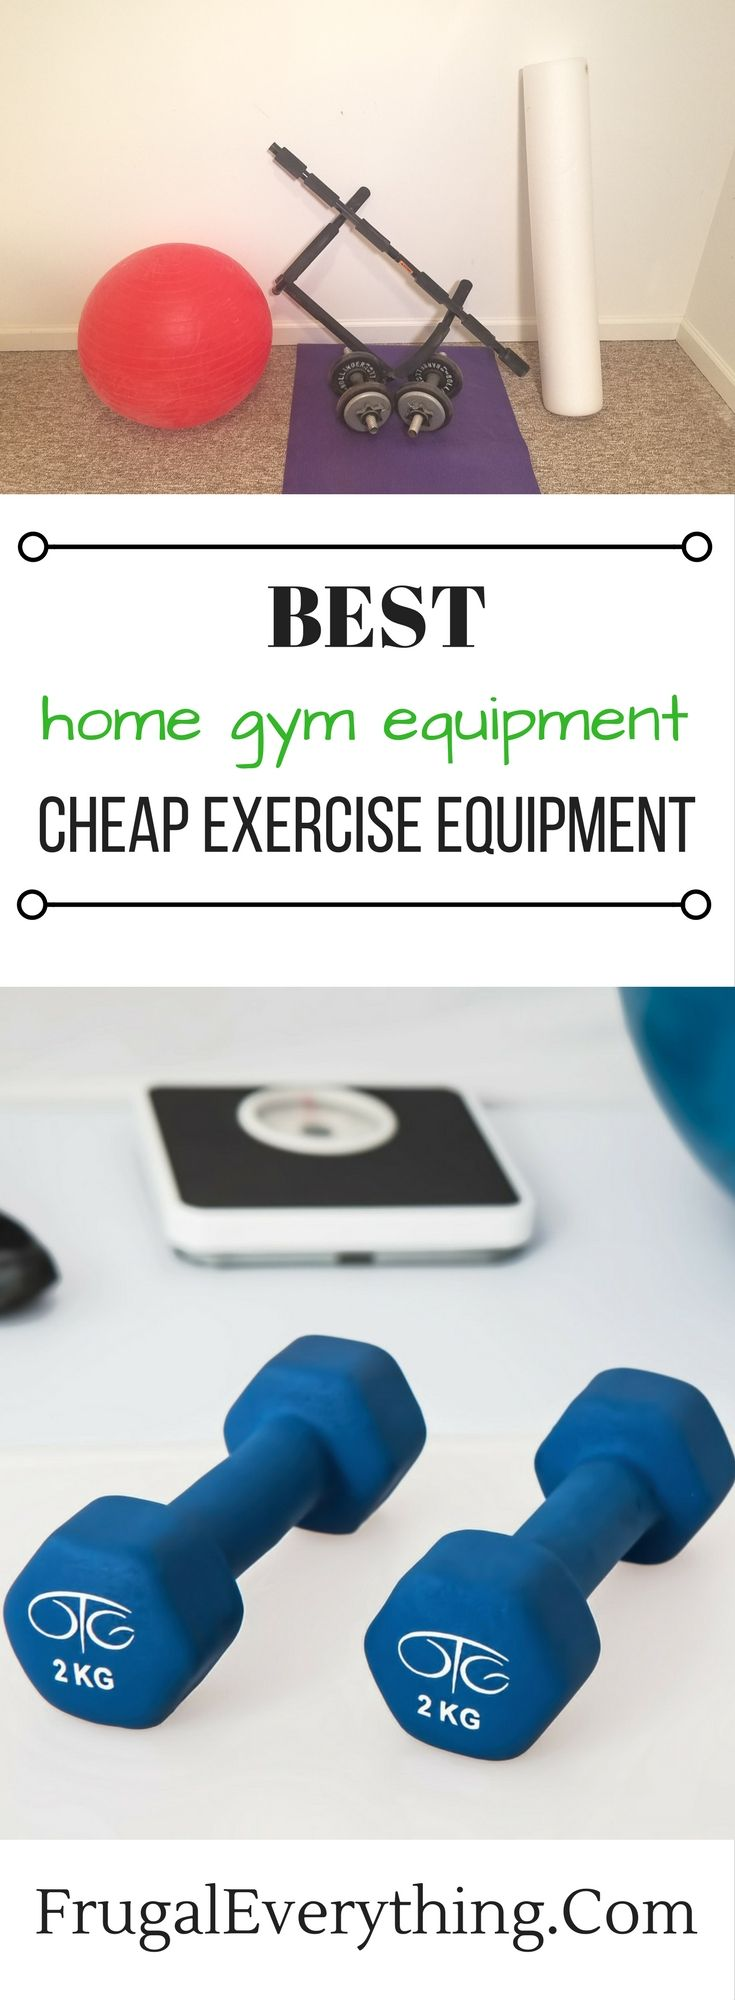 Looking to build your own home gym on a budget?  Here is a list of the best cheap exercise equipment to add to your home gym.